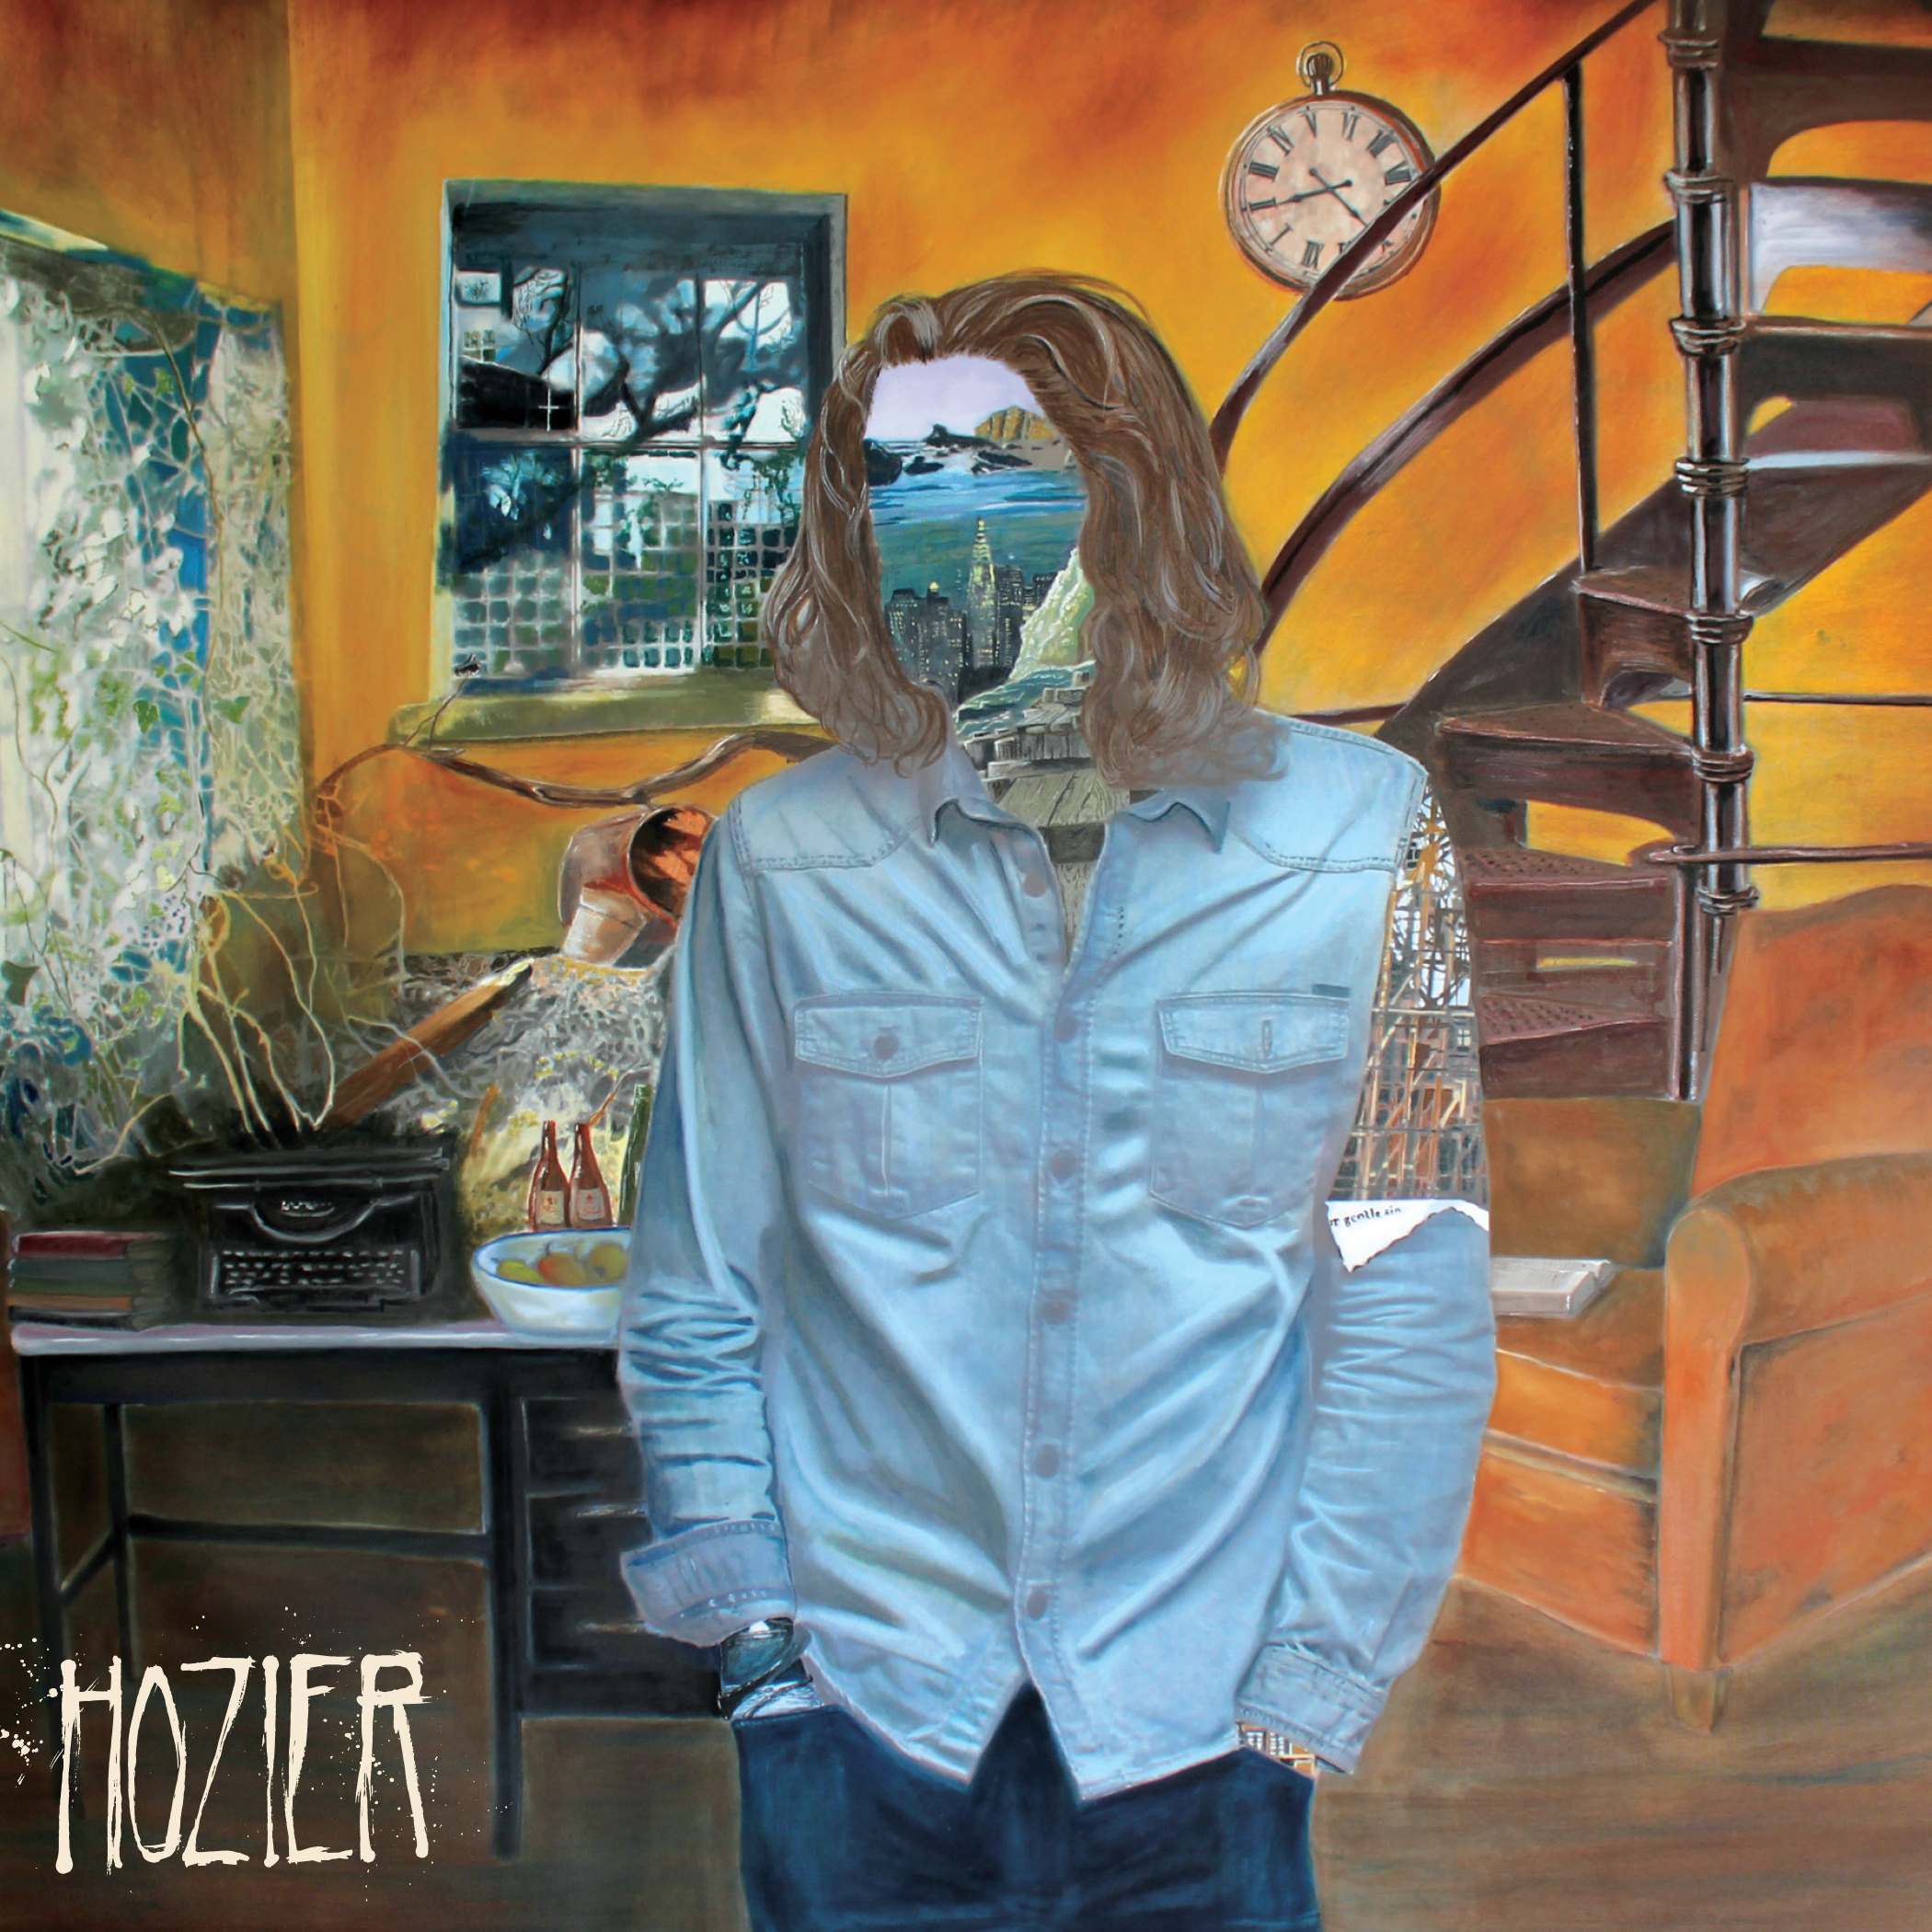 Image result for hozier album cover